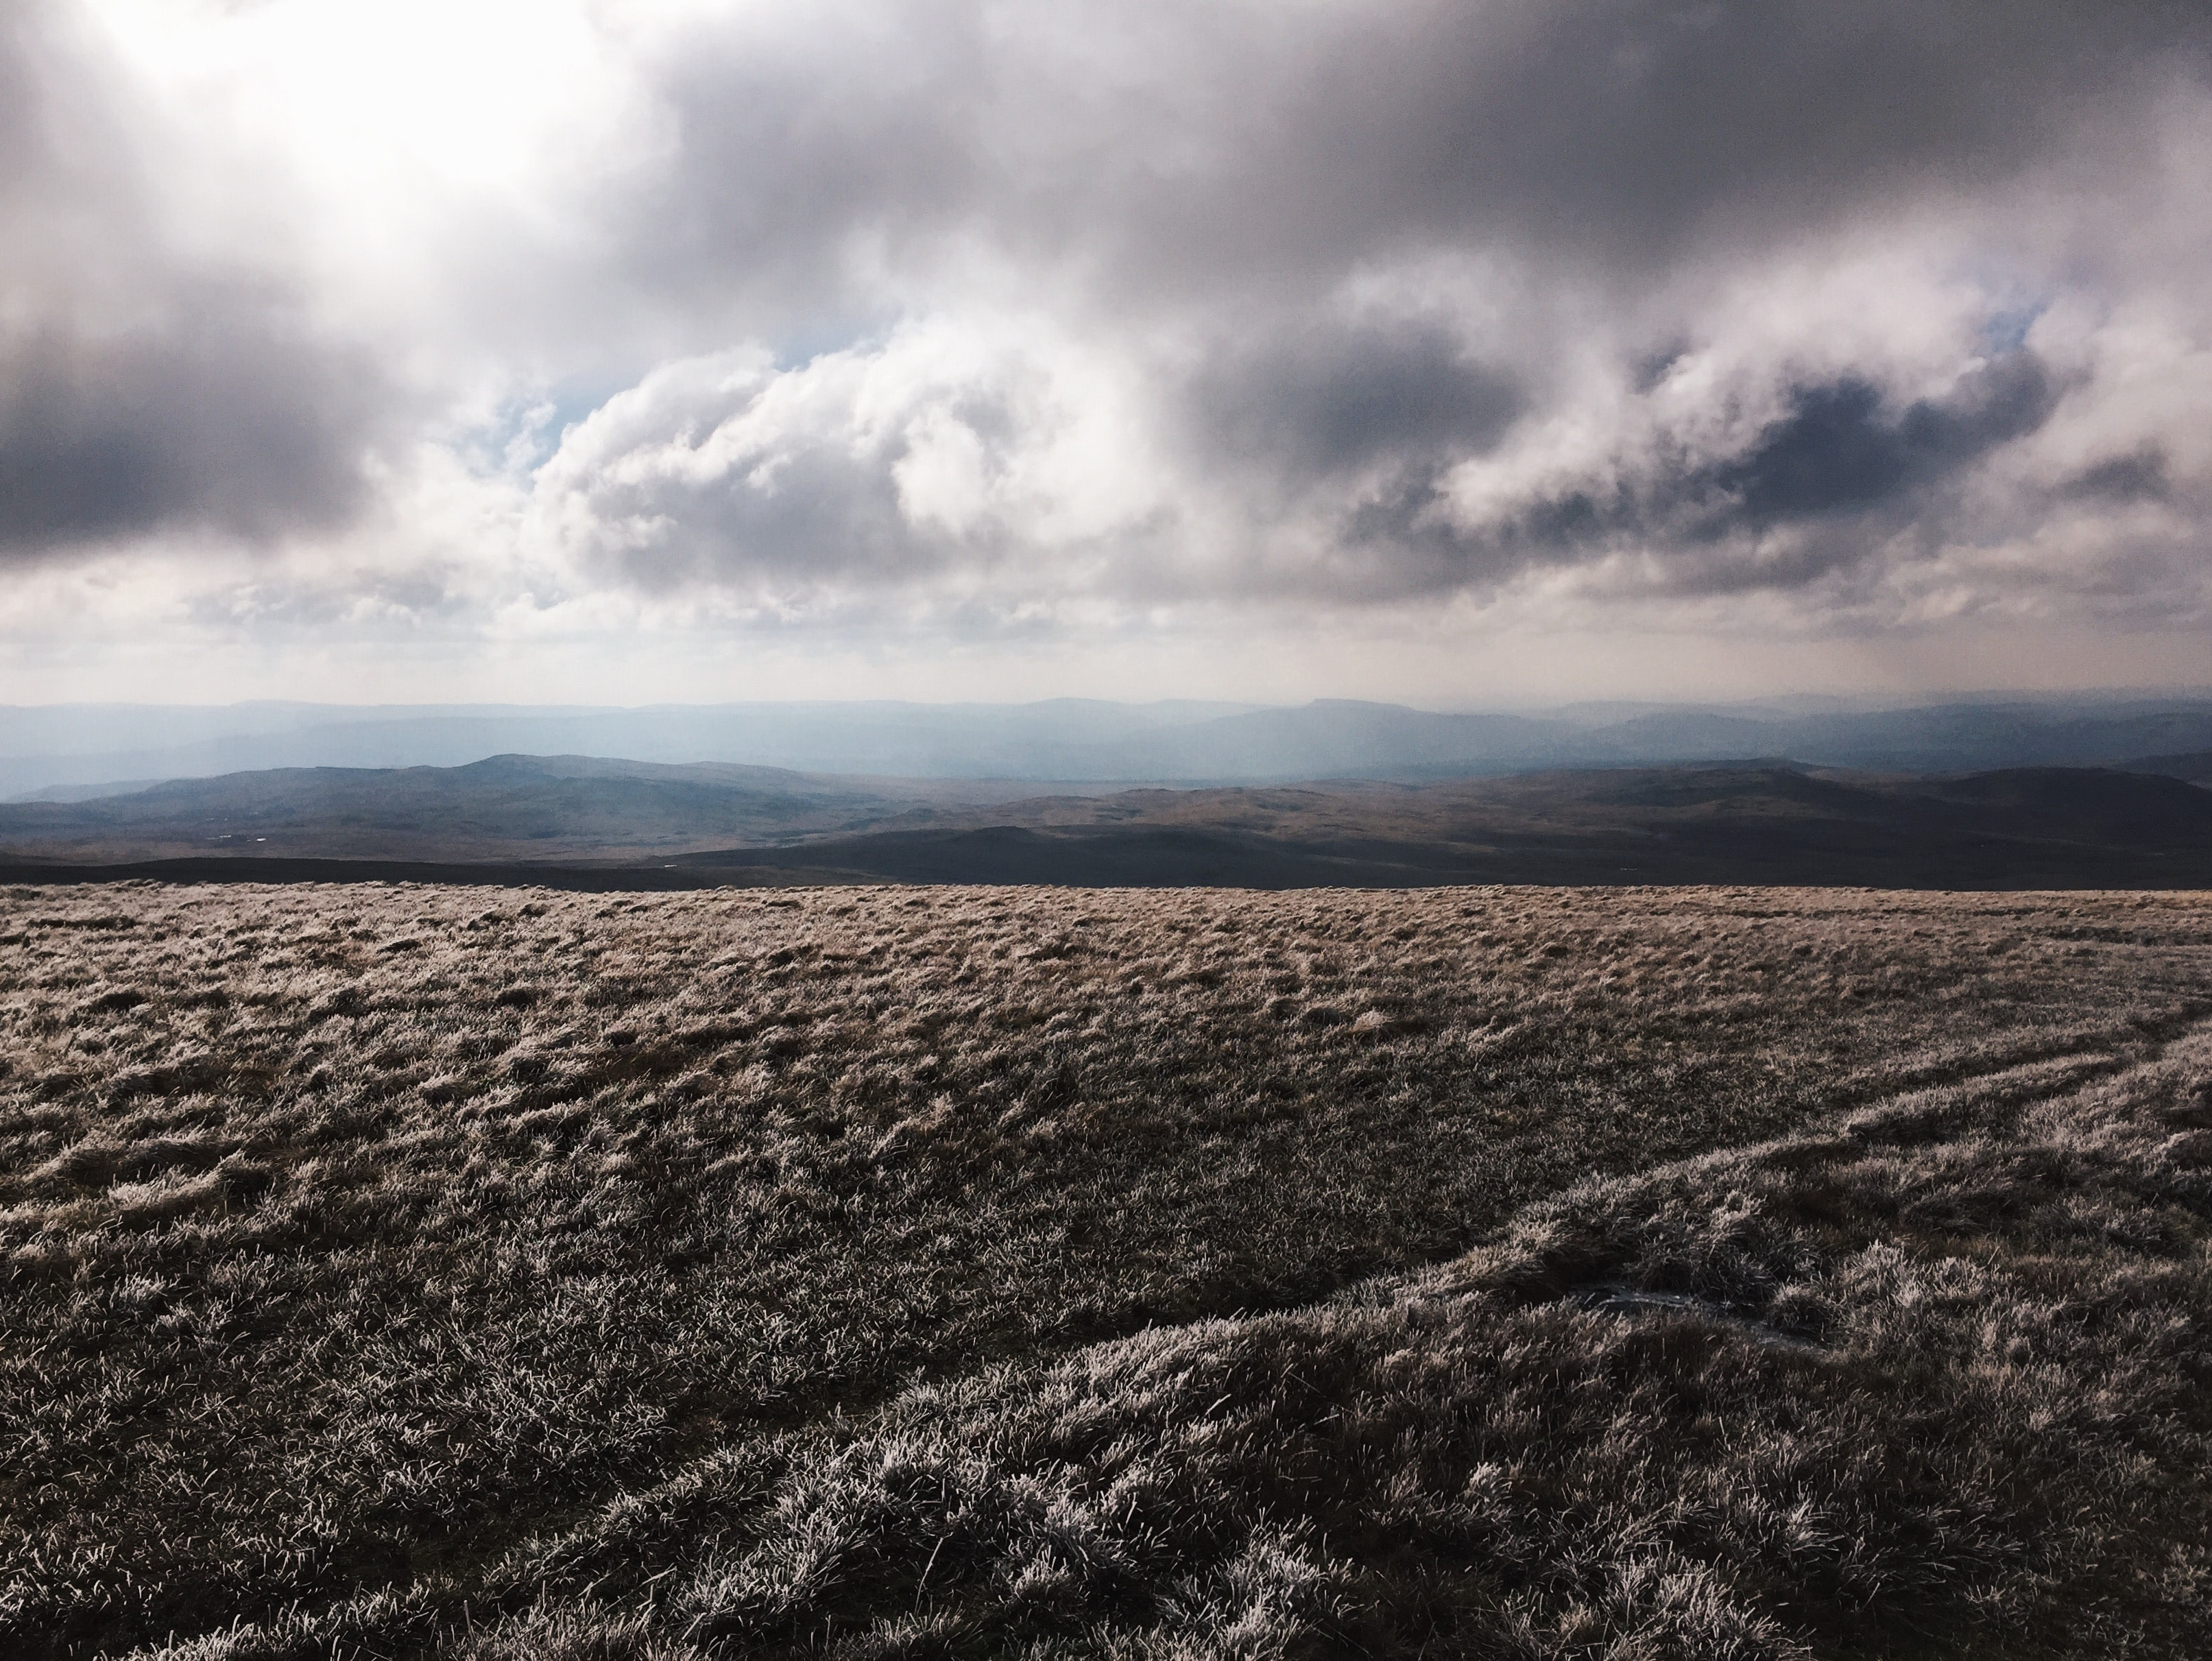 A moody rural field in the Brecon Beacons